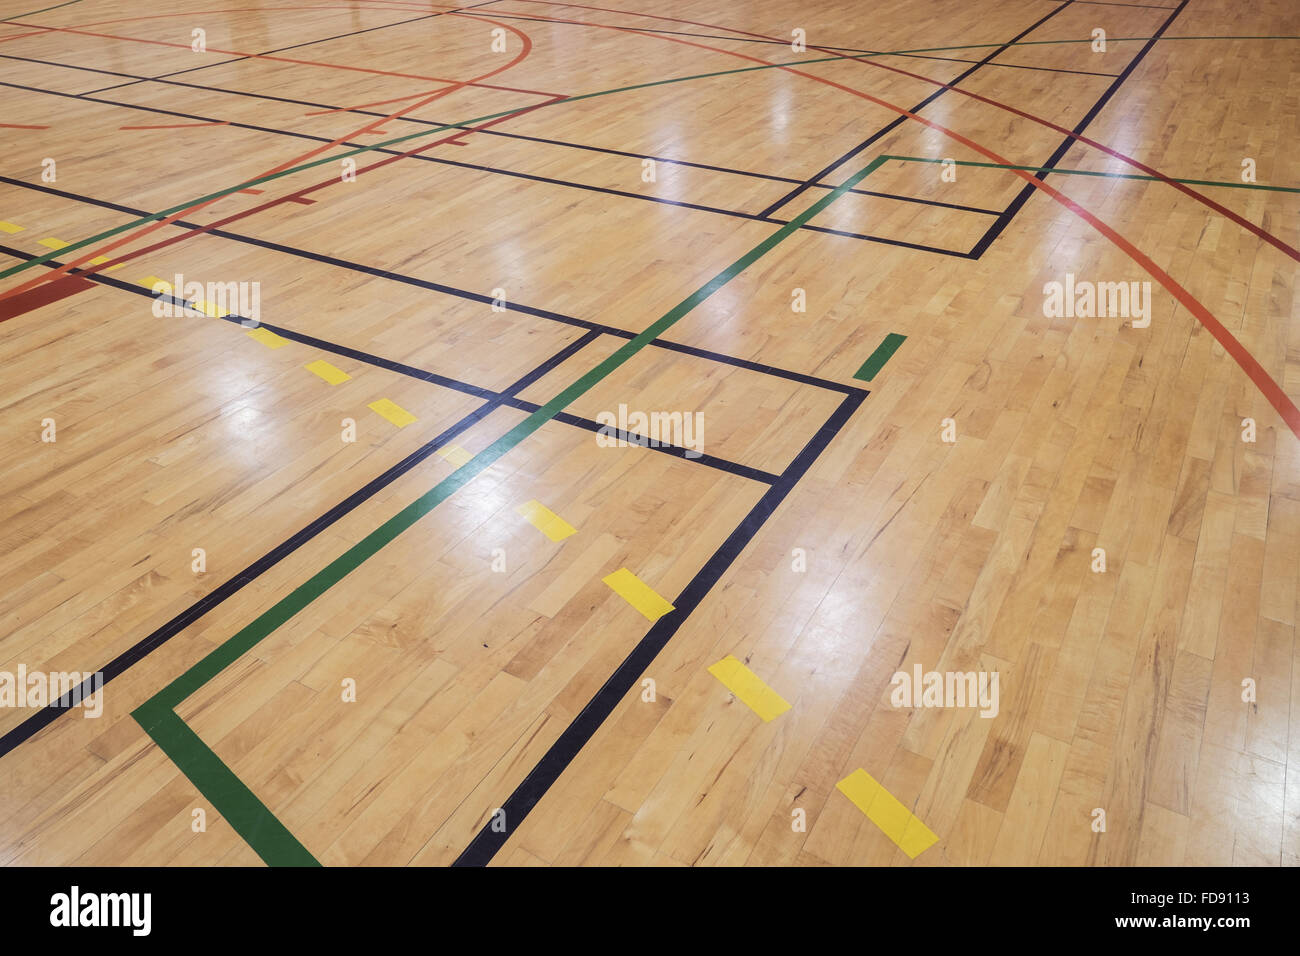 Multisport floor in old gymhall - Stock Image